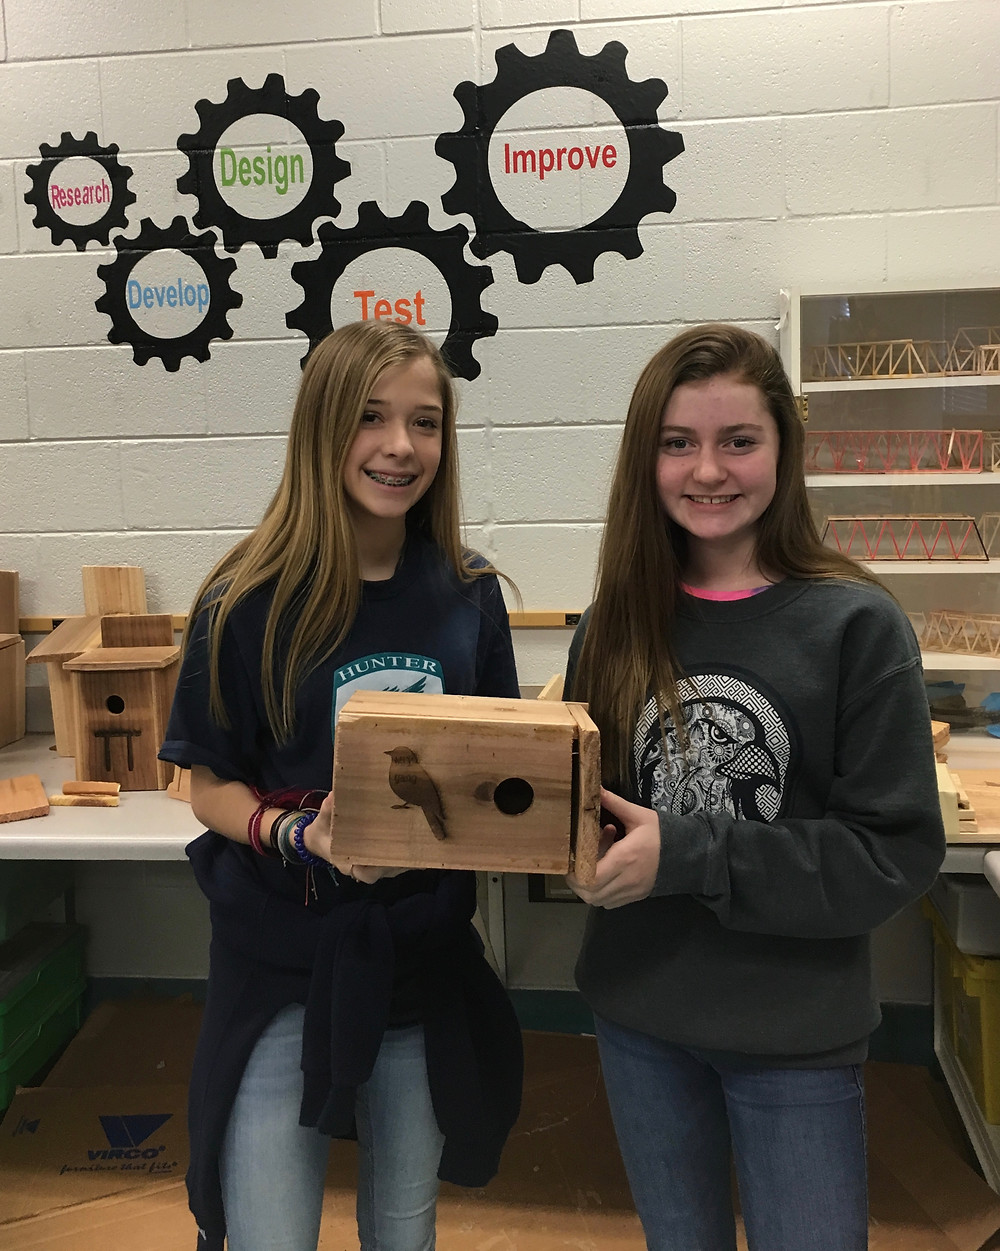 Trinity Brumlow & Lacy Pickard proudly show off their group's completed bird design.